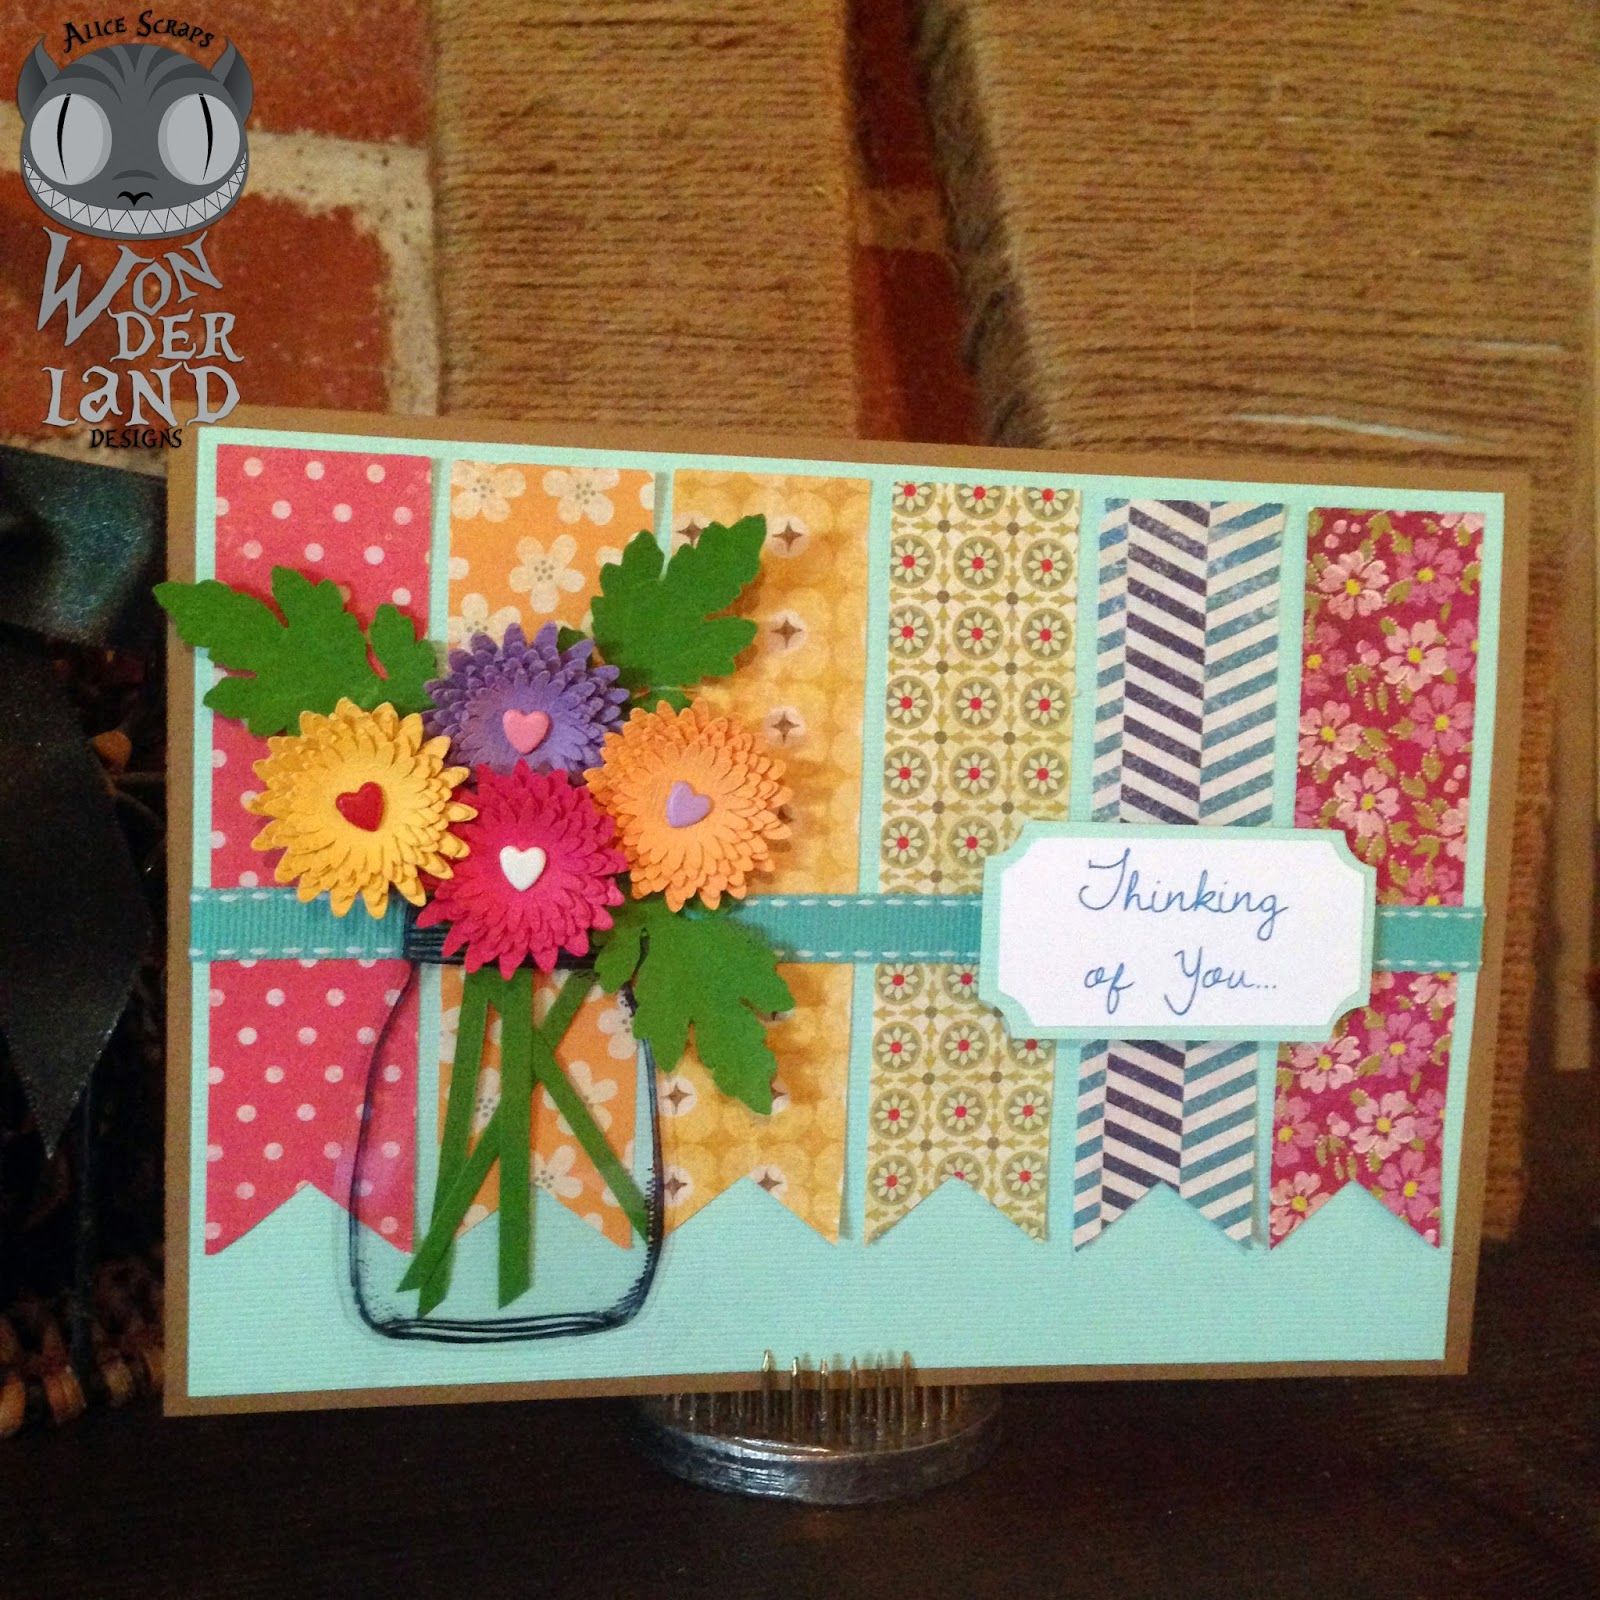 handmade card, scrapbooking, scrapbook, handmade, paper crafting, flowers, chrysanthemums, mums, brads, mason jar, acrylic, banner, pennants, rainbow, colorful, bright, sympathy card